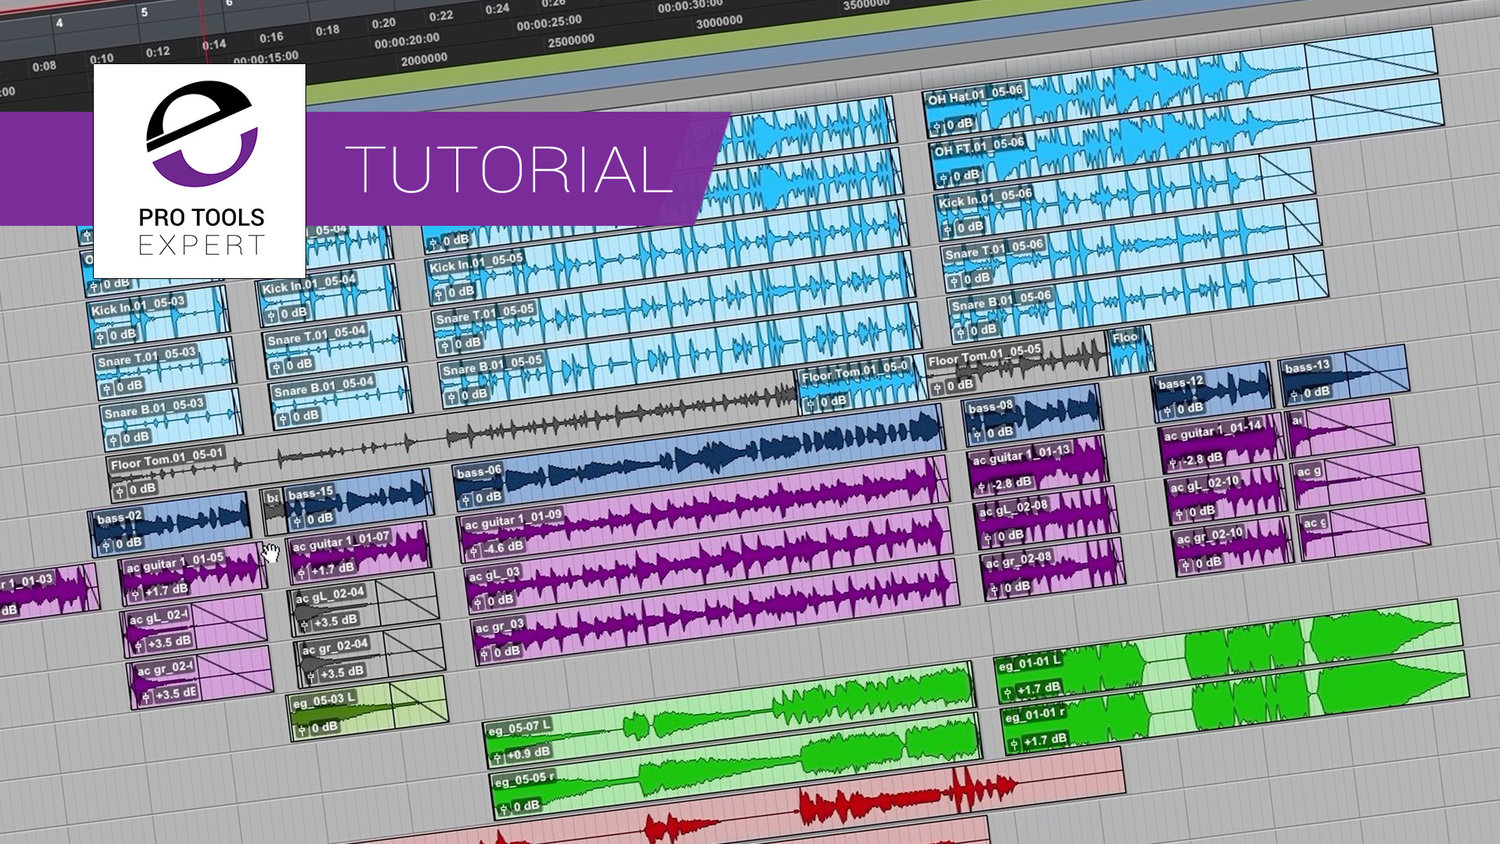 Tutorial - How To Print Tracks & Export Stems As Audio Files